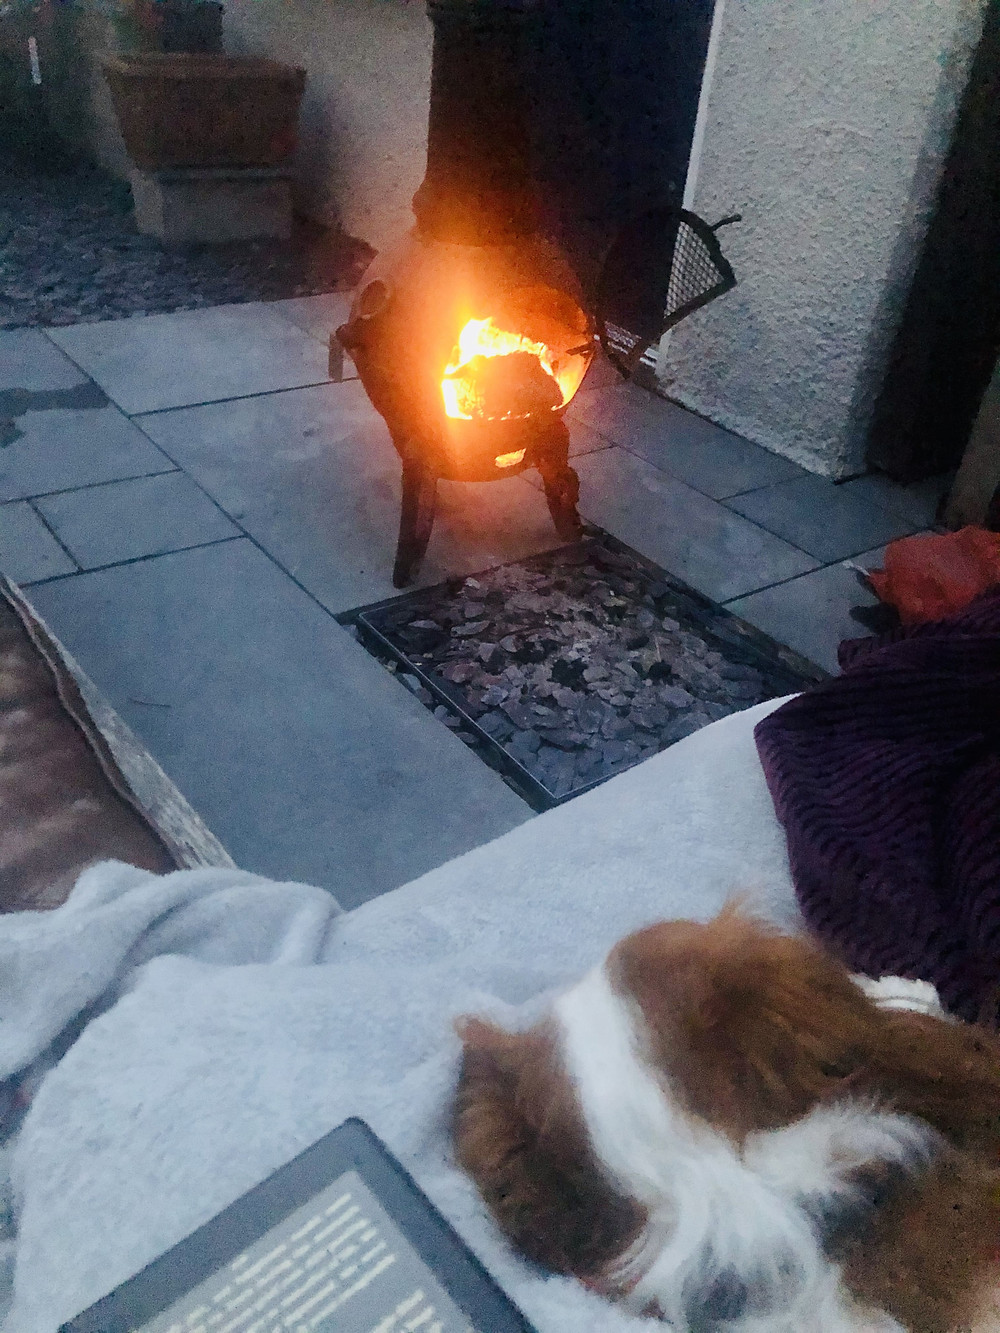 Disabled lockdown holiday at home - chimenea burning